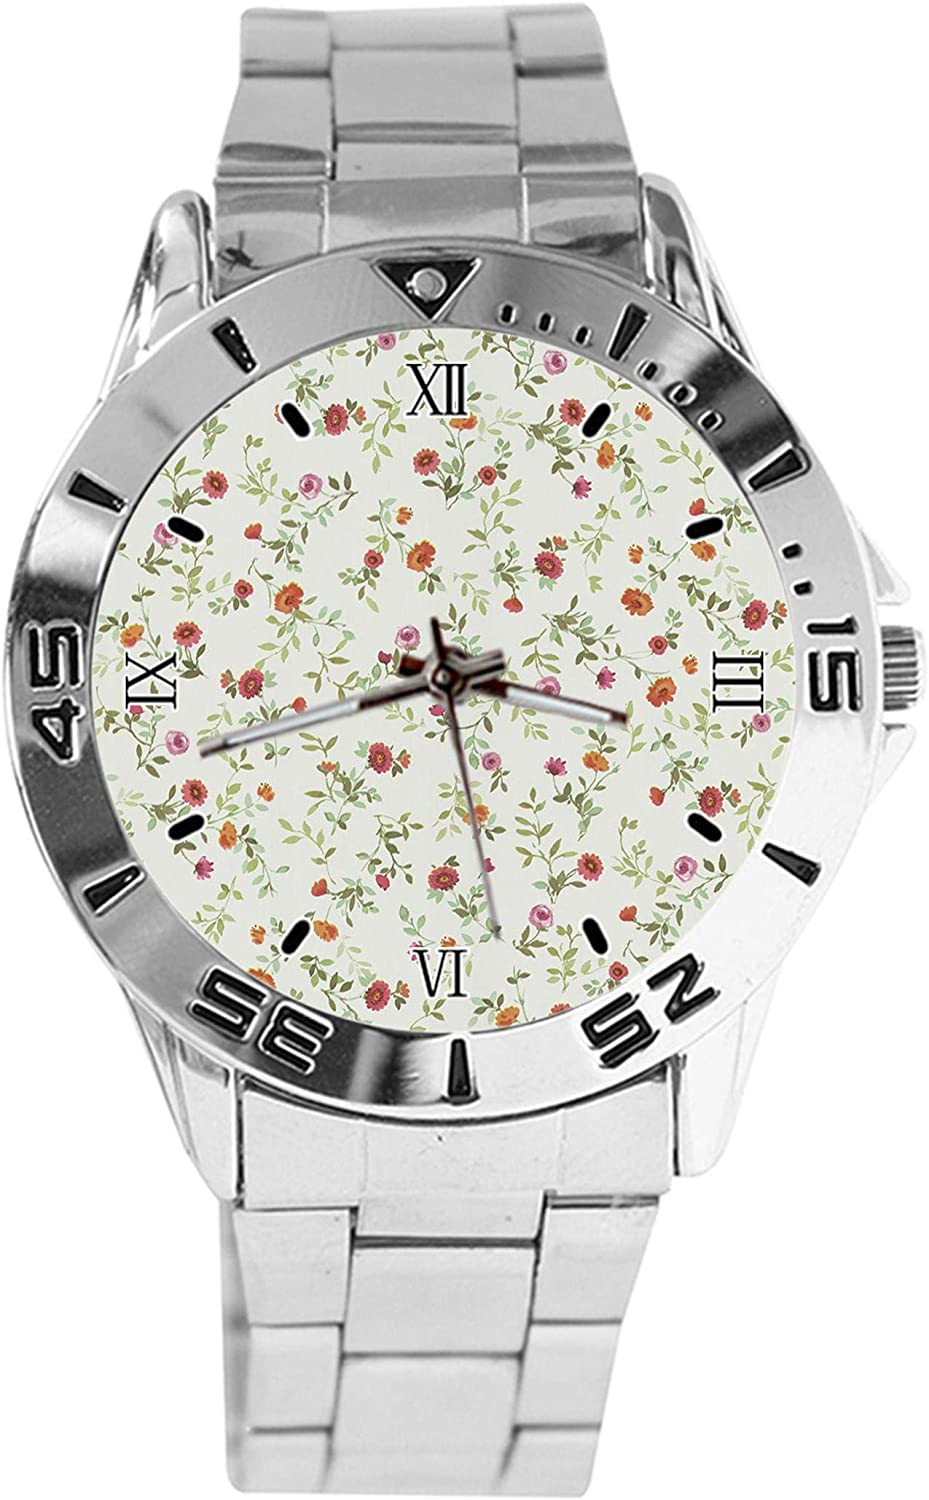 Oakland Mall Floral Design Analog Wrist Watch Dial Stai Max 60% OFF Silver Quartz Classic